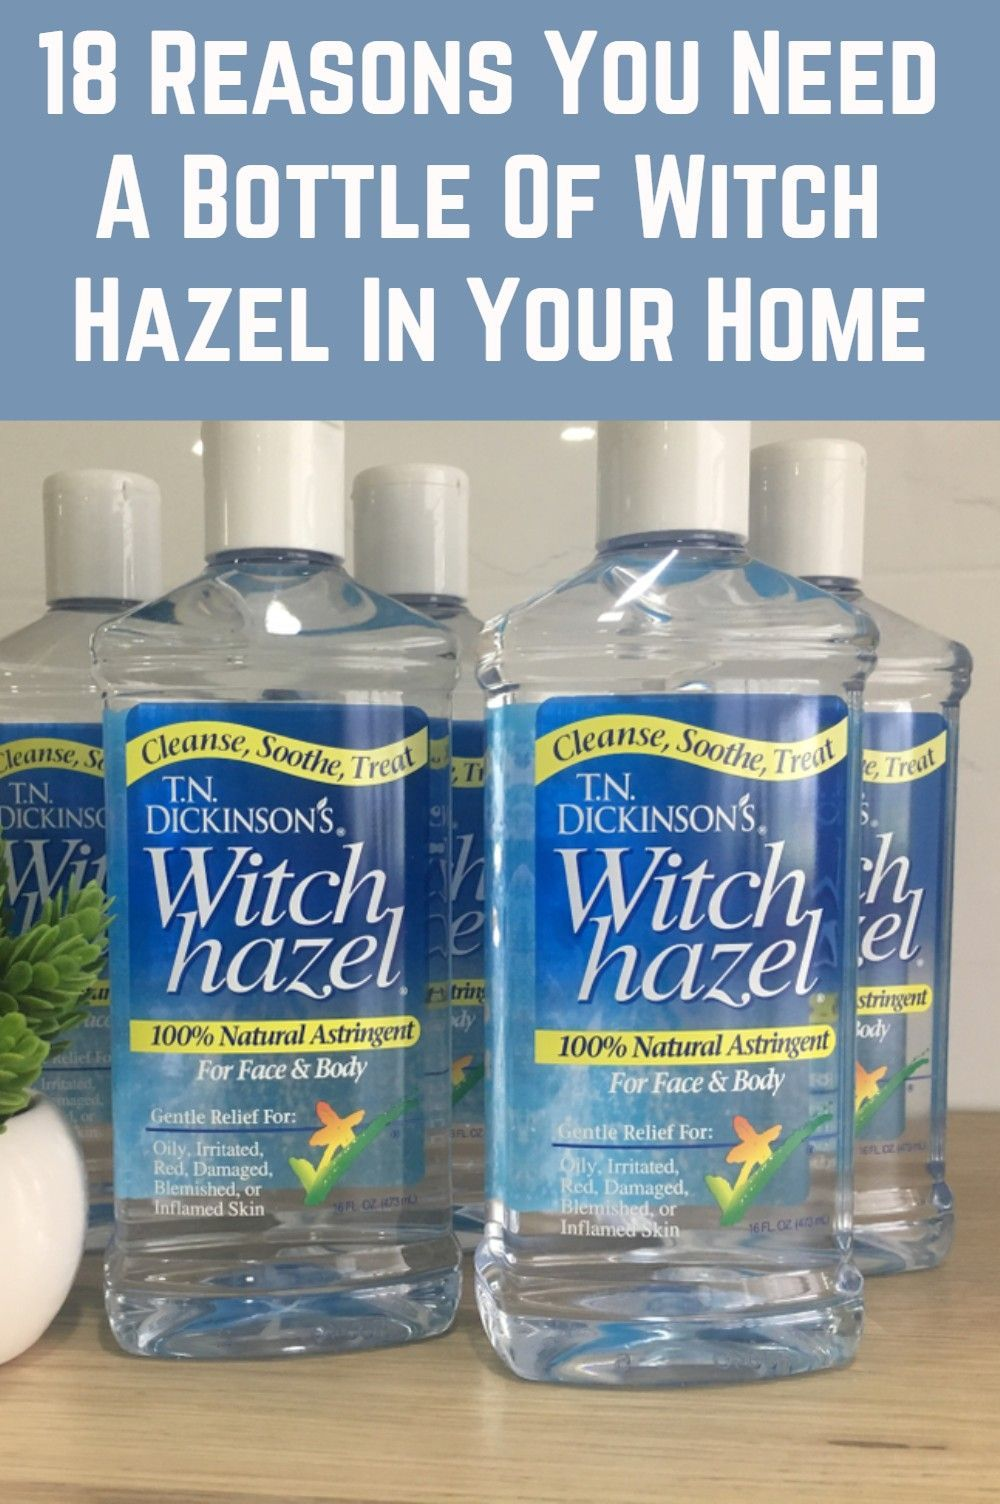 Witch Hazel: 18 Uses For This Powerful Little Bott